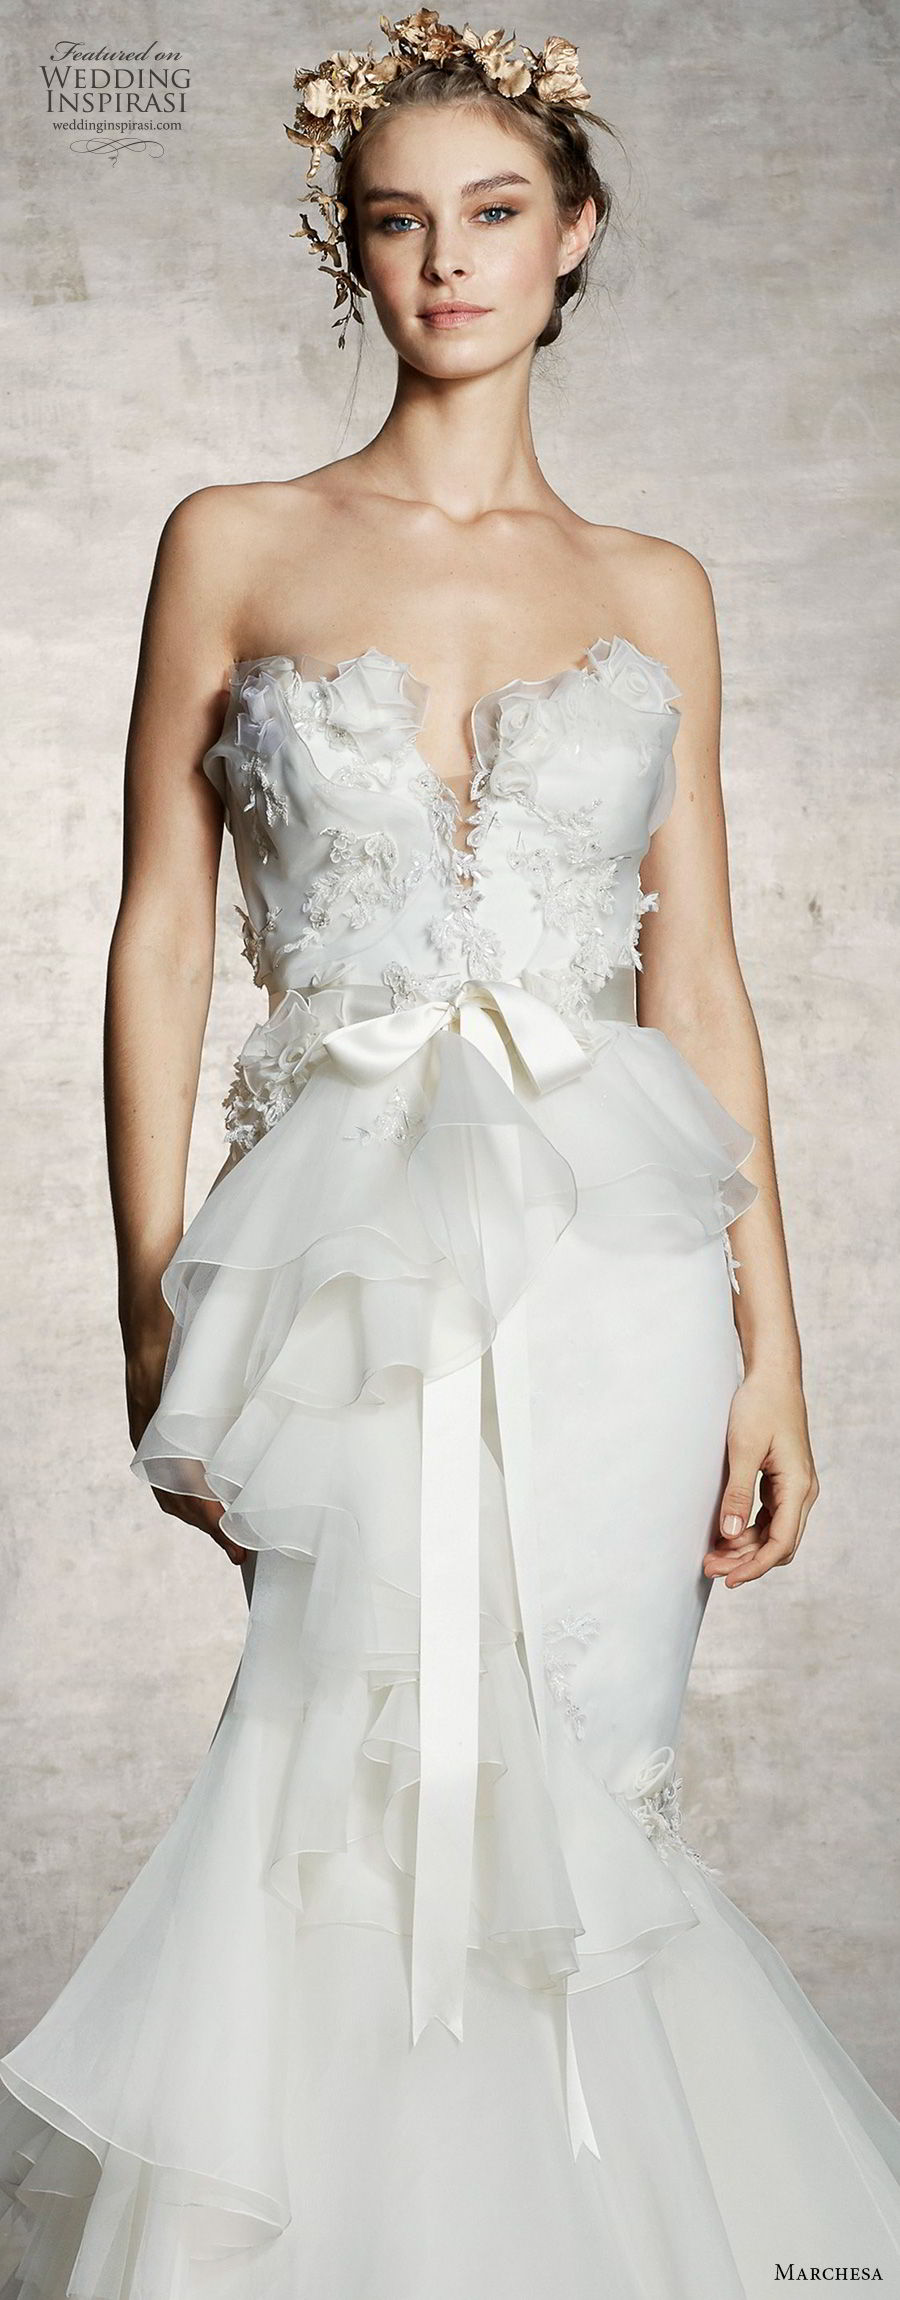 marchesa spring 2019 bridal strapless plunging sweetheart neckline heavily embellished bodice peplum elegant romantic mermaid wedding dress (10) lv